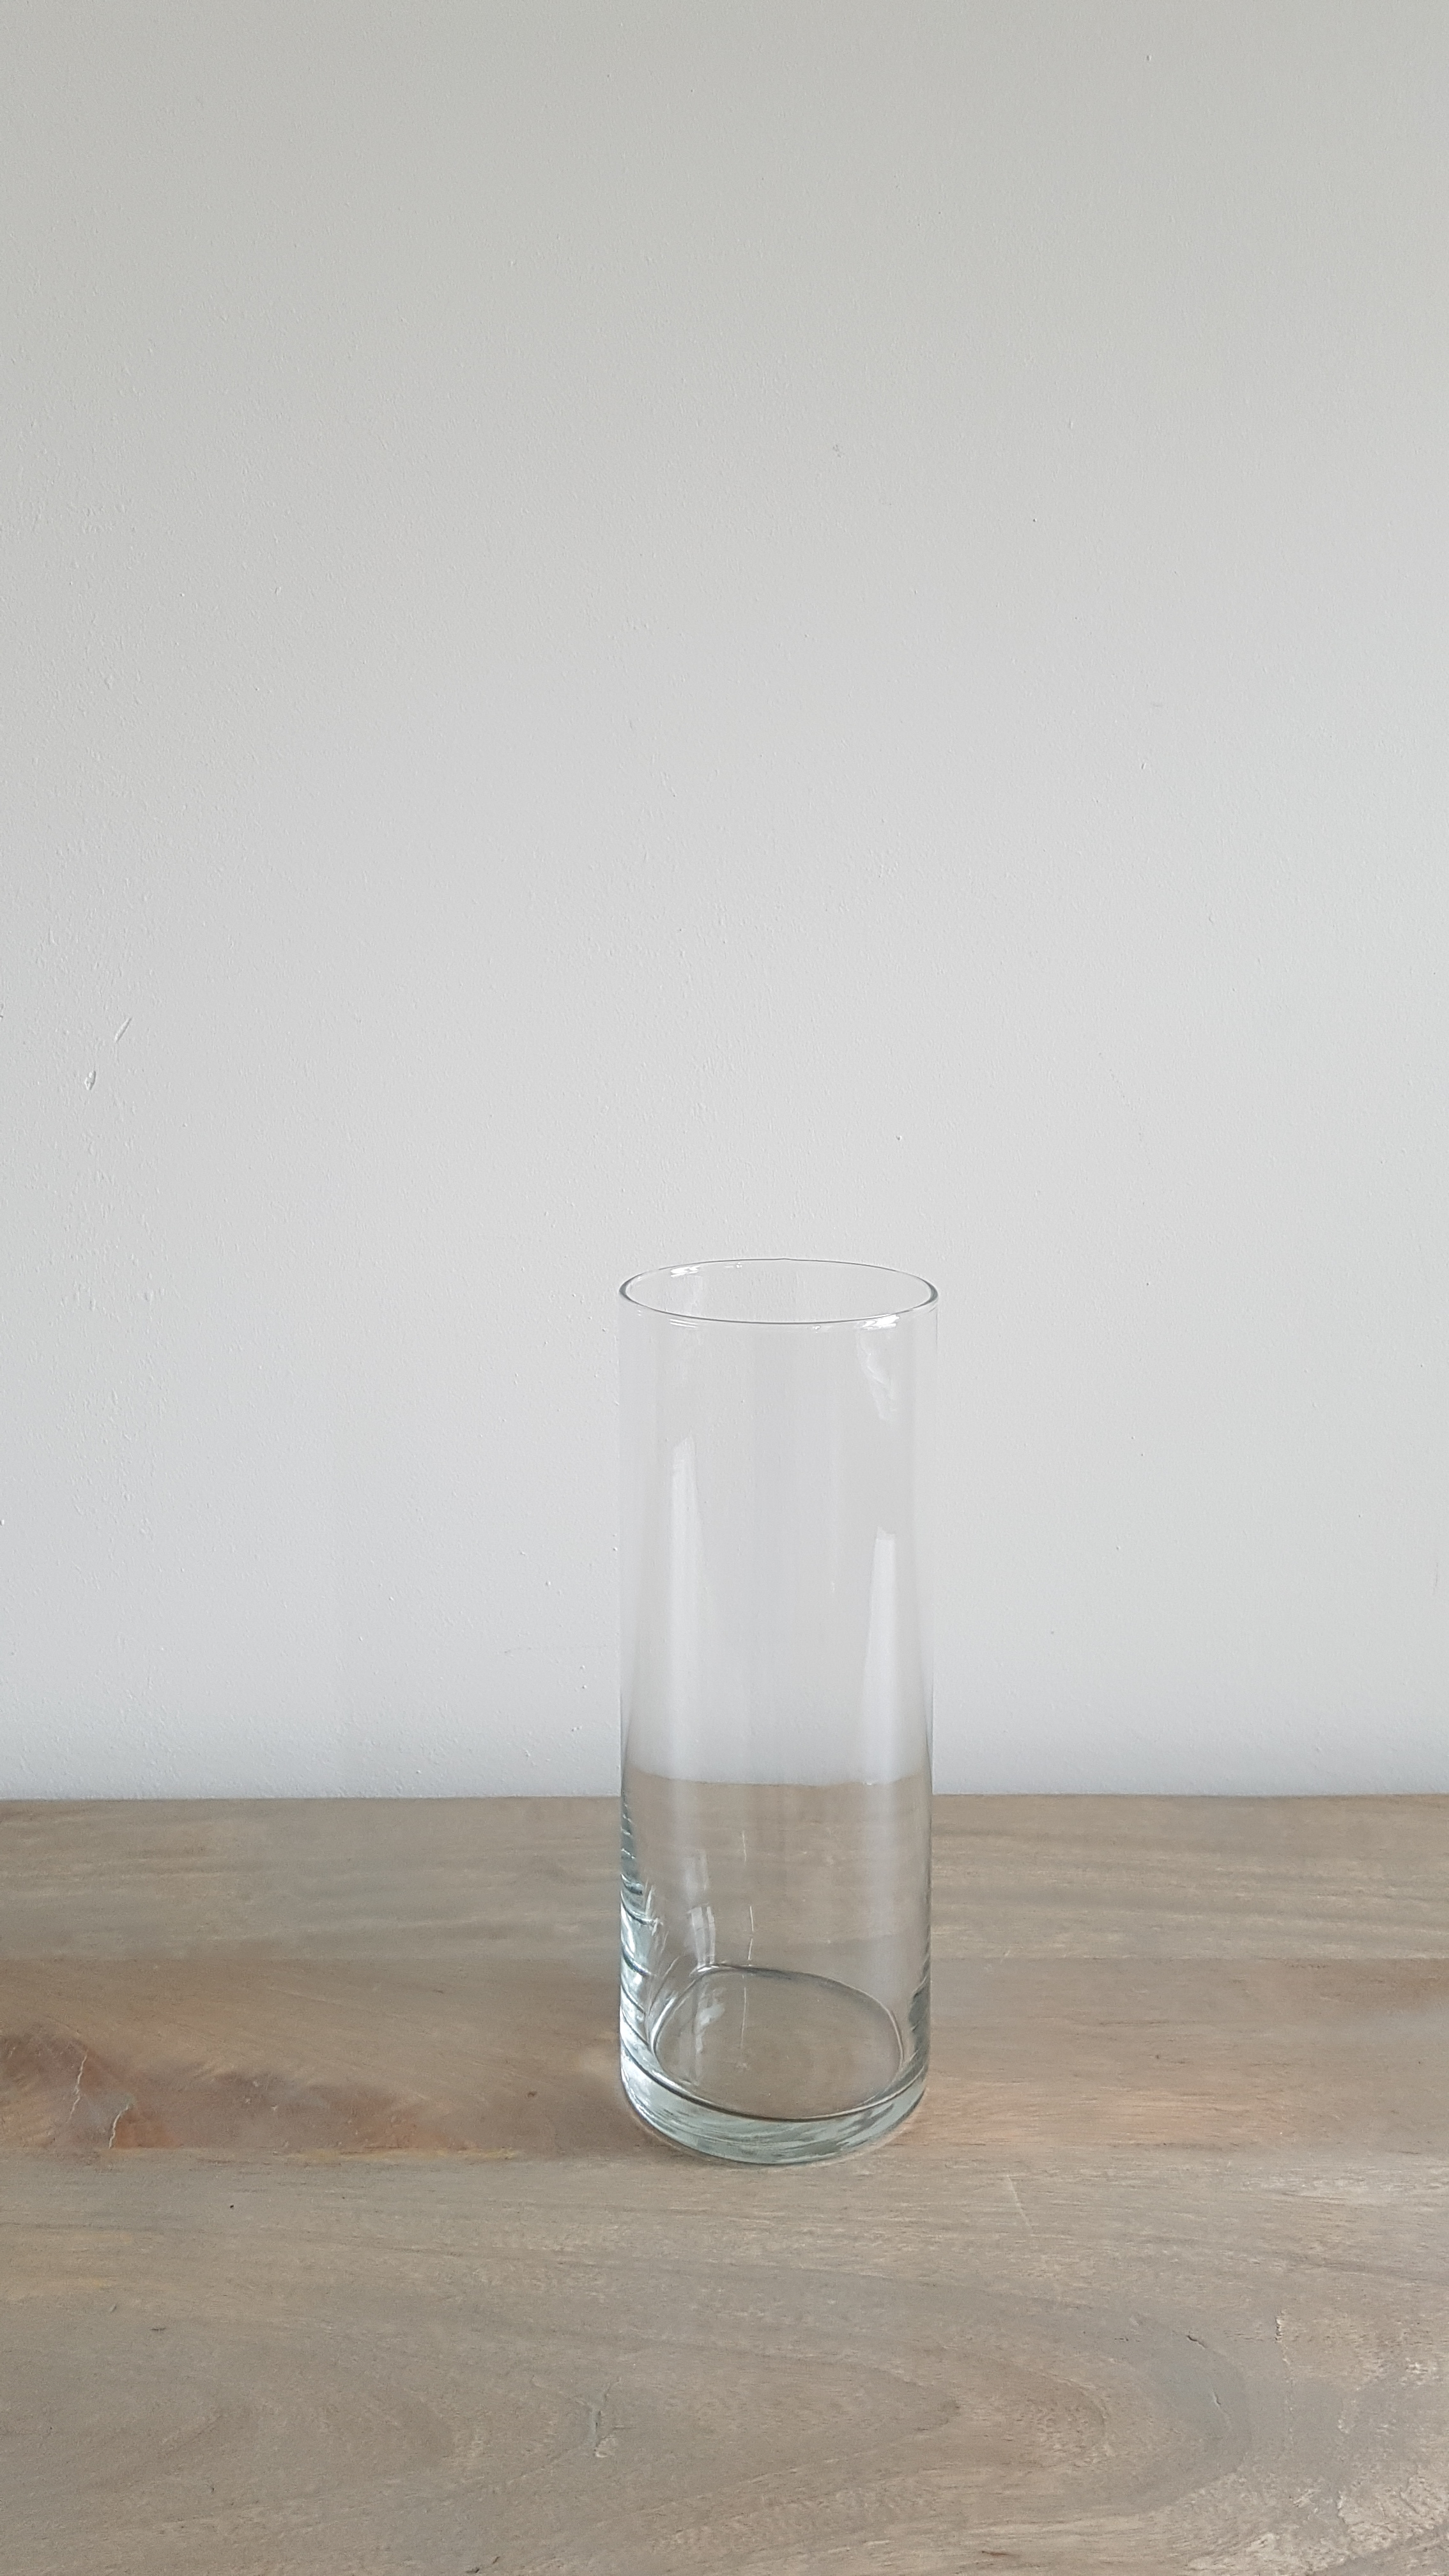 "9"" Glass Cylinder Vase - $1.75 each   Qty: 50"